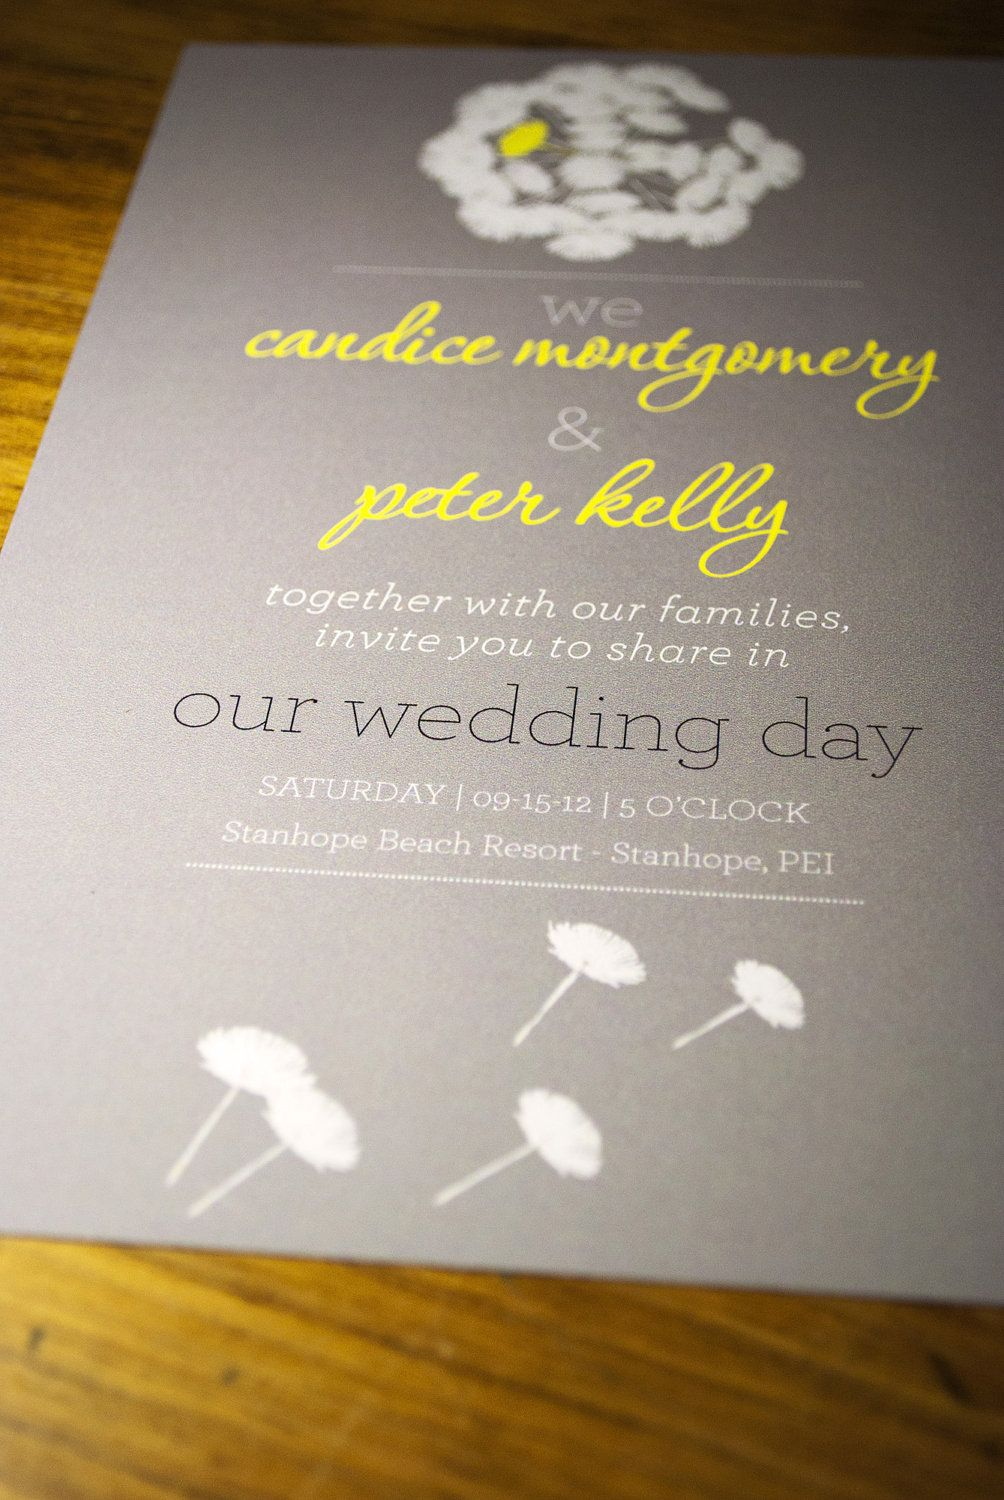 Wedding Invitation Grey and Yellow Floral by nvcreative on Etsy